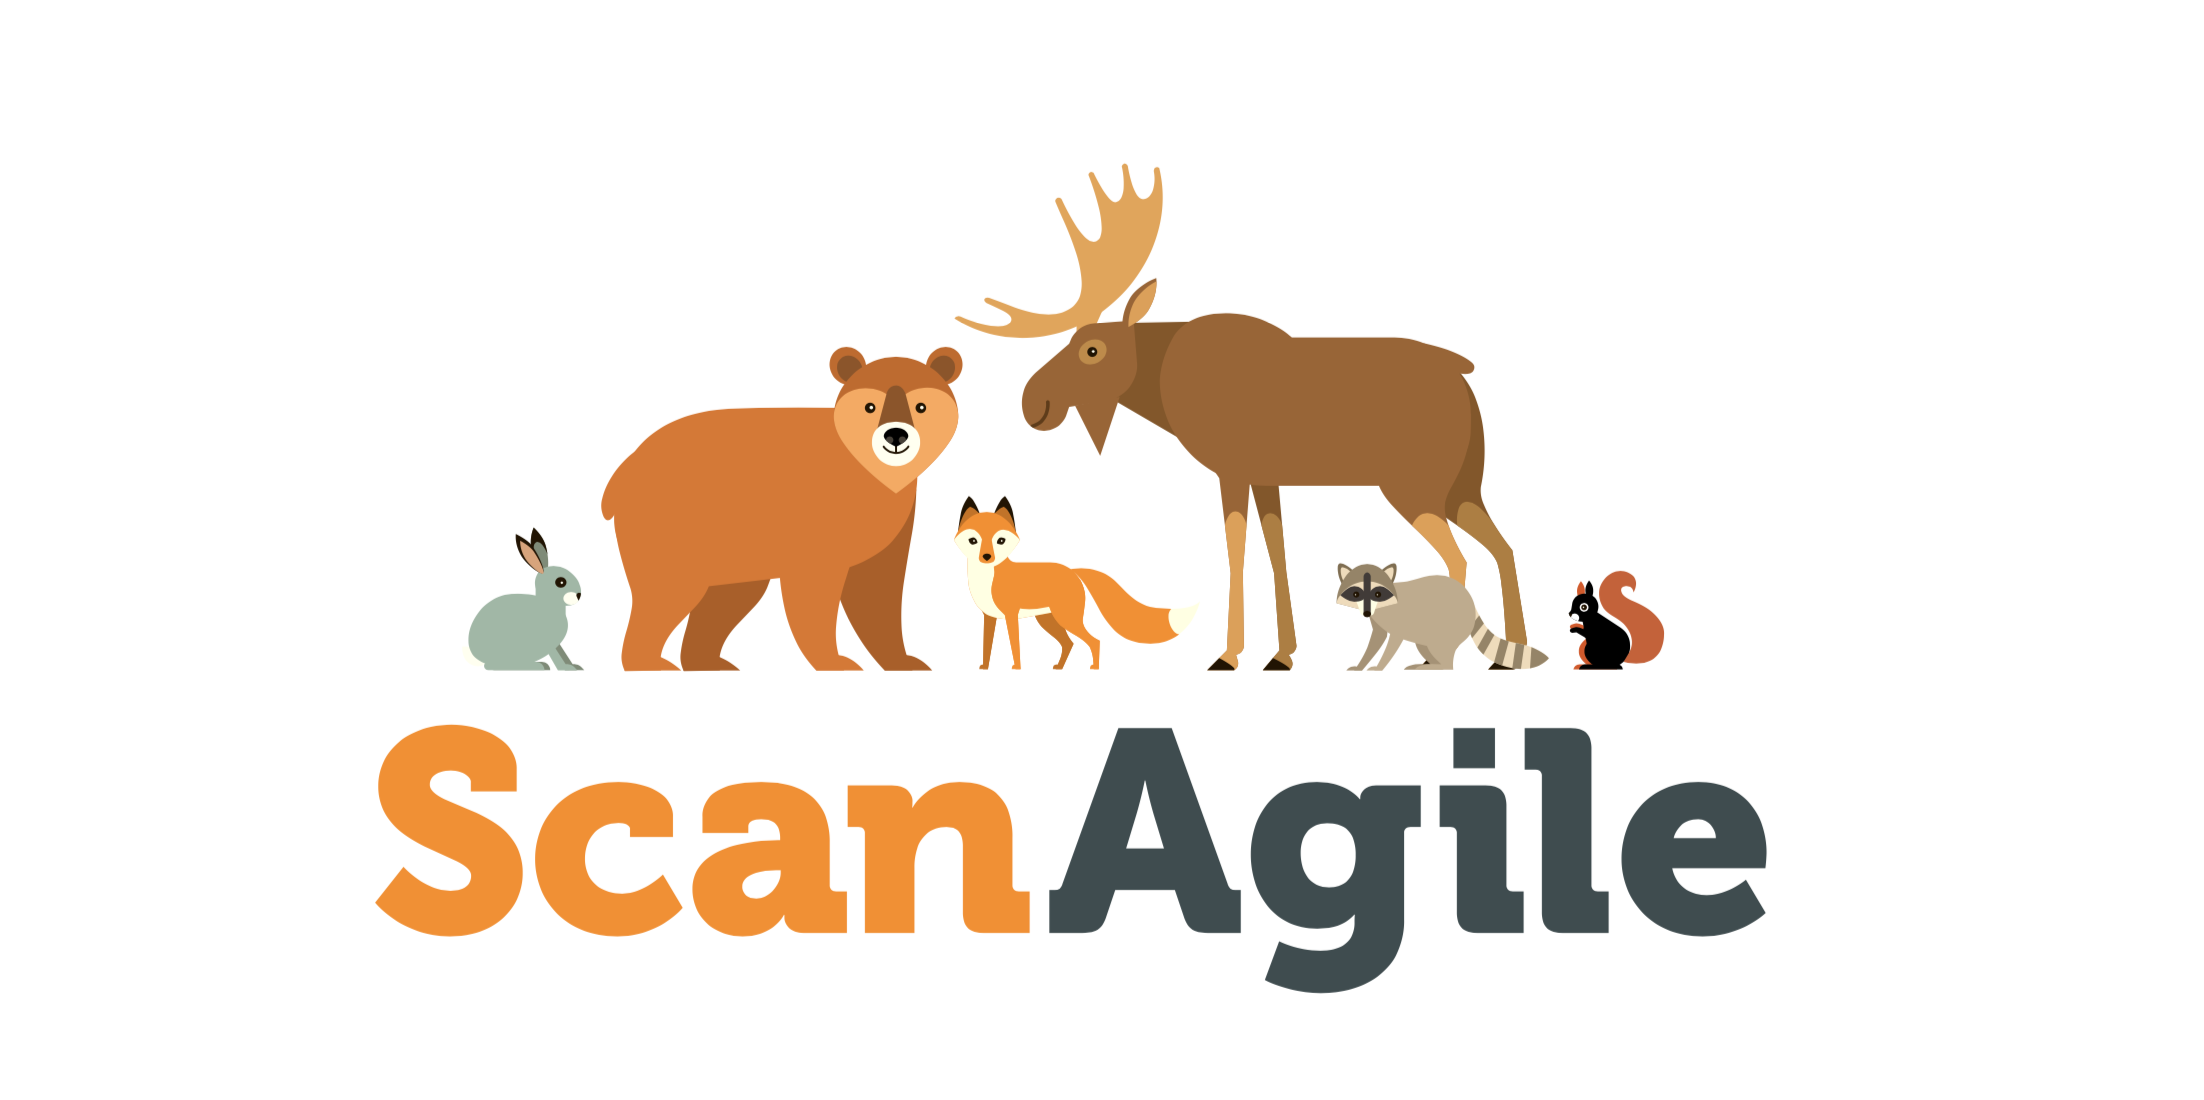 ScanAgile is an Agile Practices conferences represented by a cartoon bear, a cartoon moose, and a cartoon squirrel